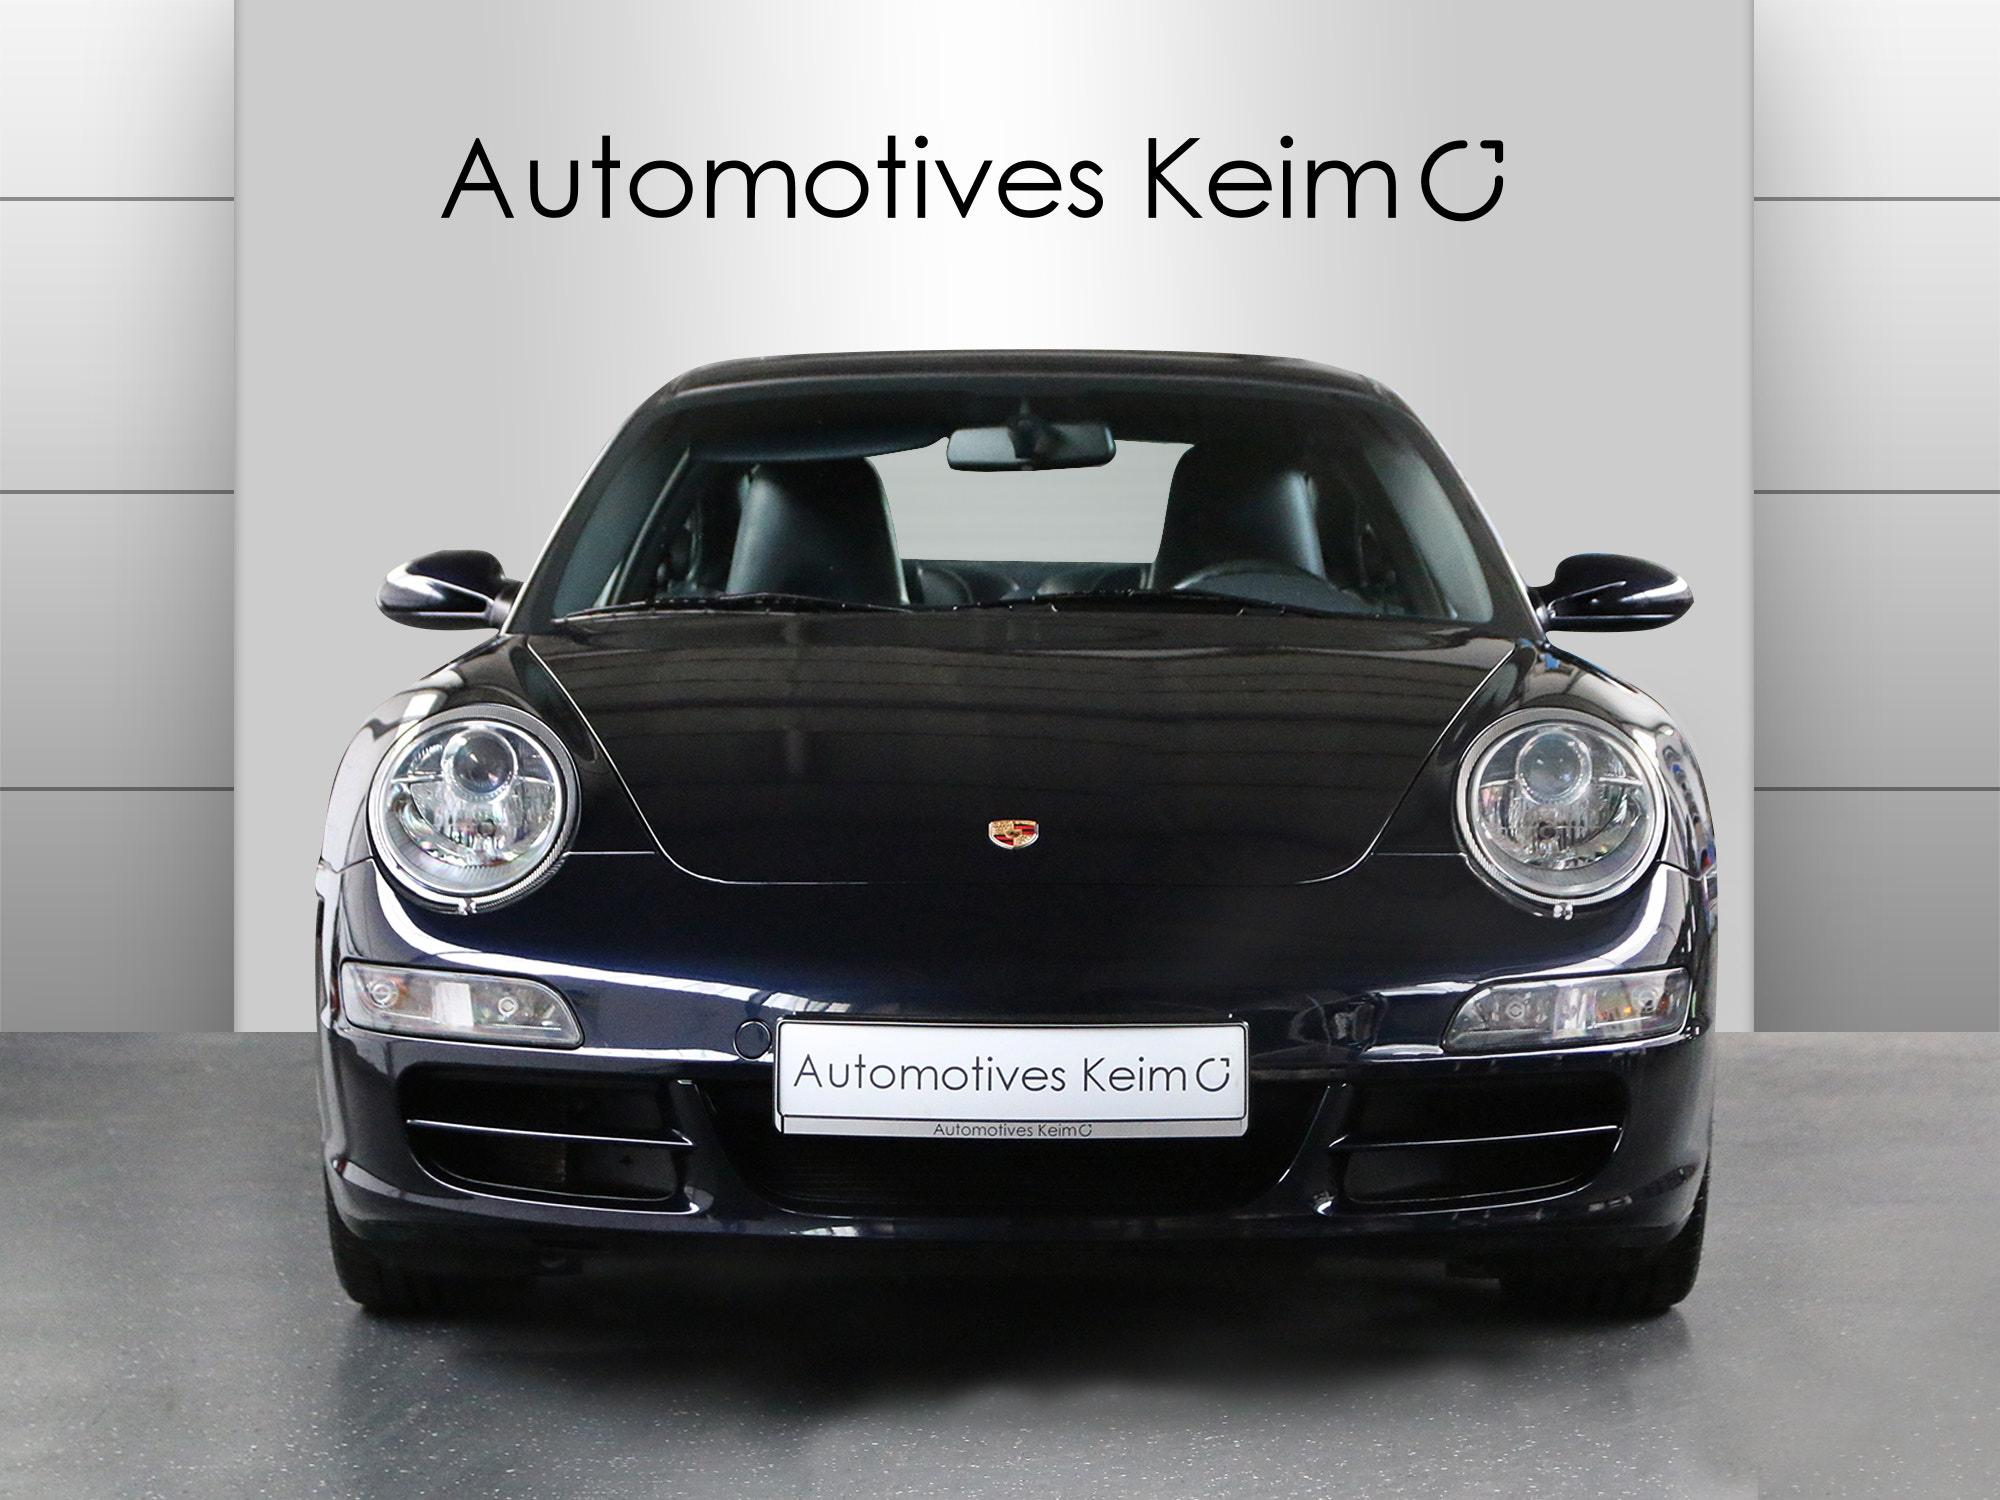 PORSCHE 911 997 Automotives Keim GmbH 63500 Seligenstadt Www.automotives Keim.de Oliver Keim 000136